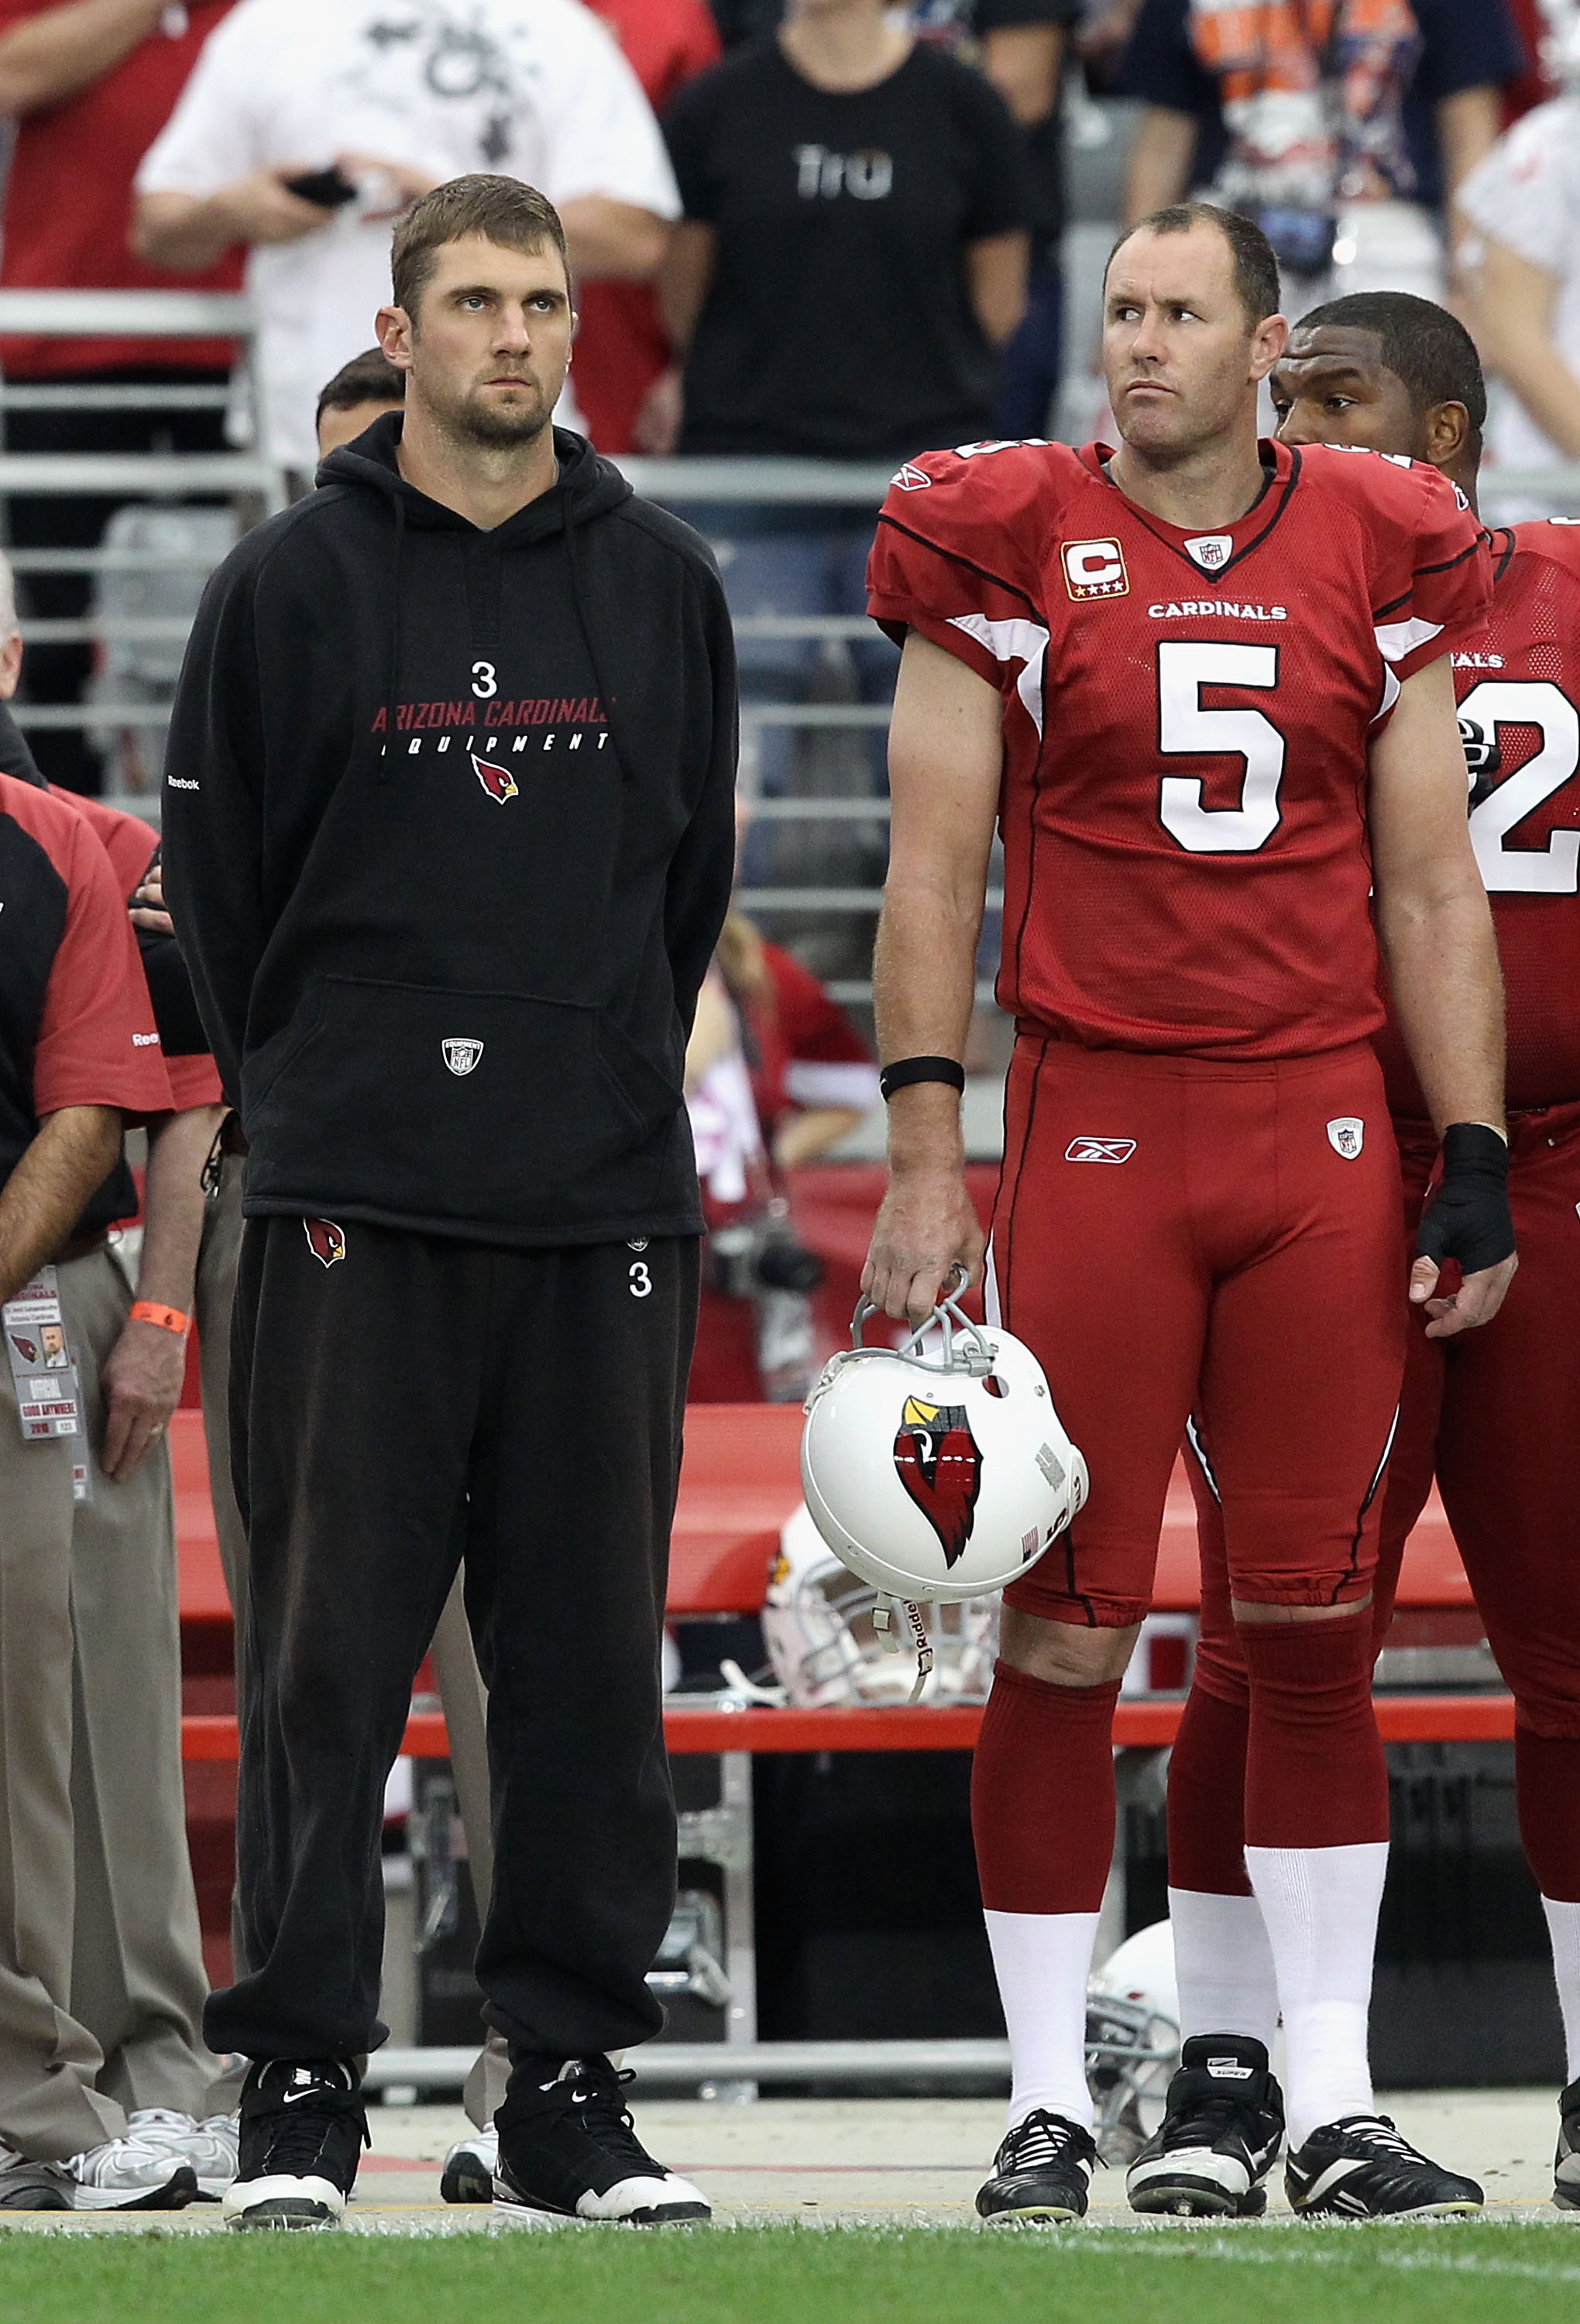 GLENDALE, AZ - DECEMBER 12:  Quarterback Derek Anderson #3 and Ben Graham #5 of the Arizona Cardinals stand attended for the National Anthem before the NFL game against the Denver Broncos at the University of Phoenix Stadium on December 12, 2010 in Glenda